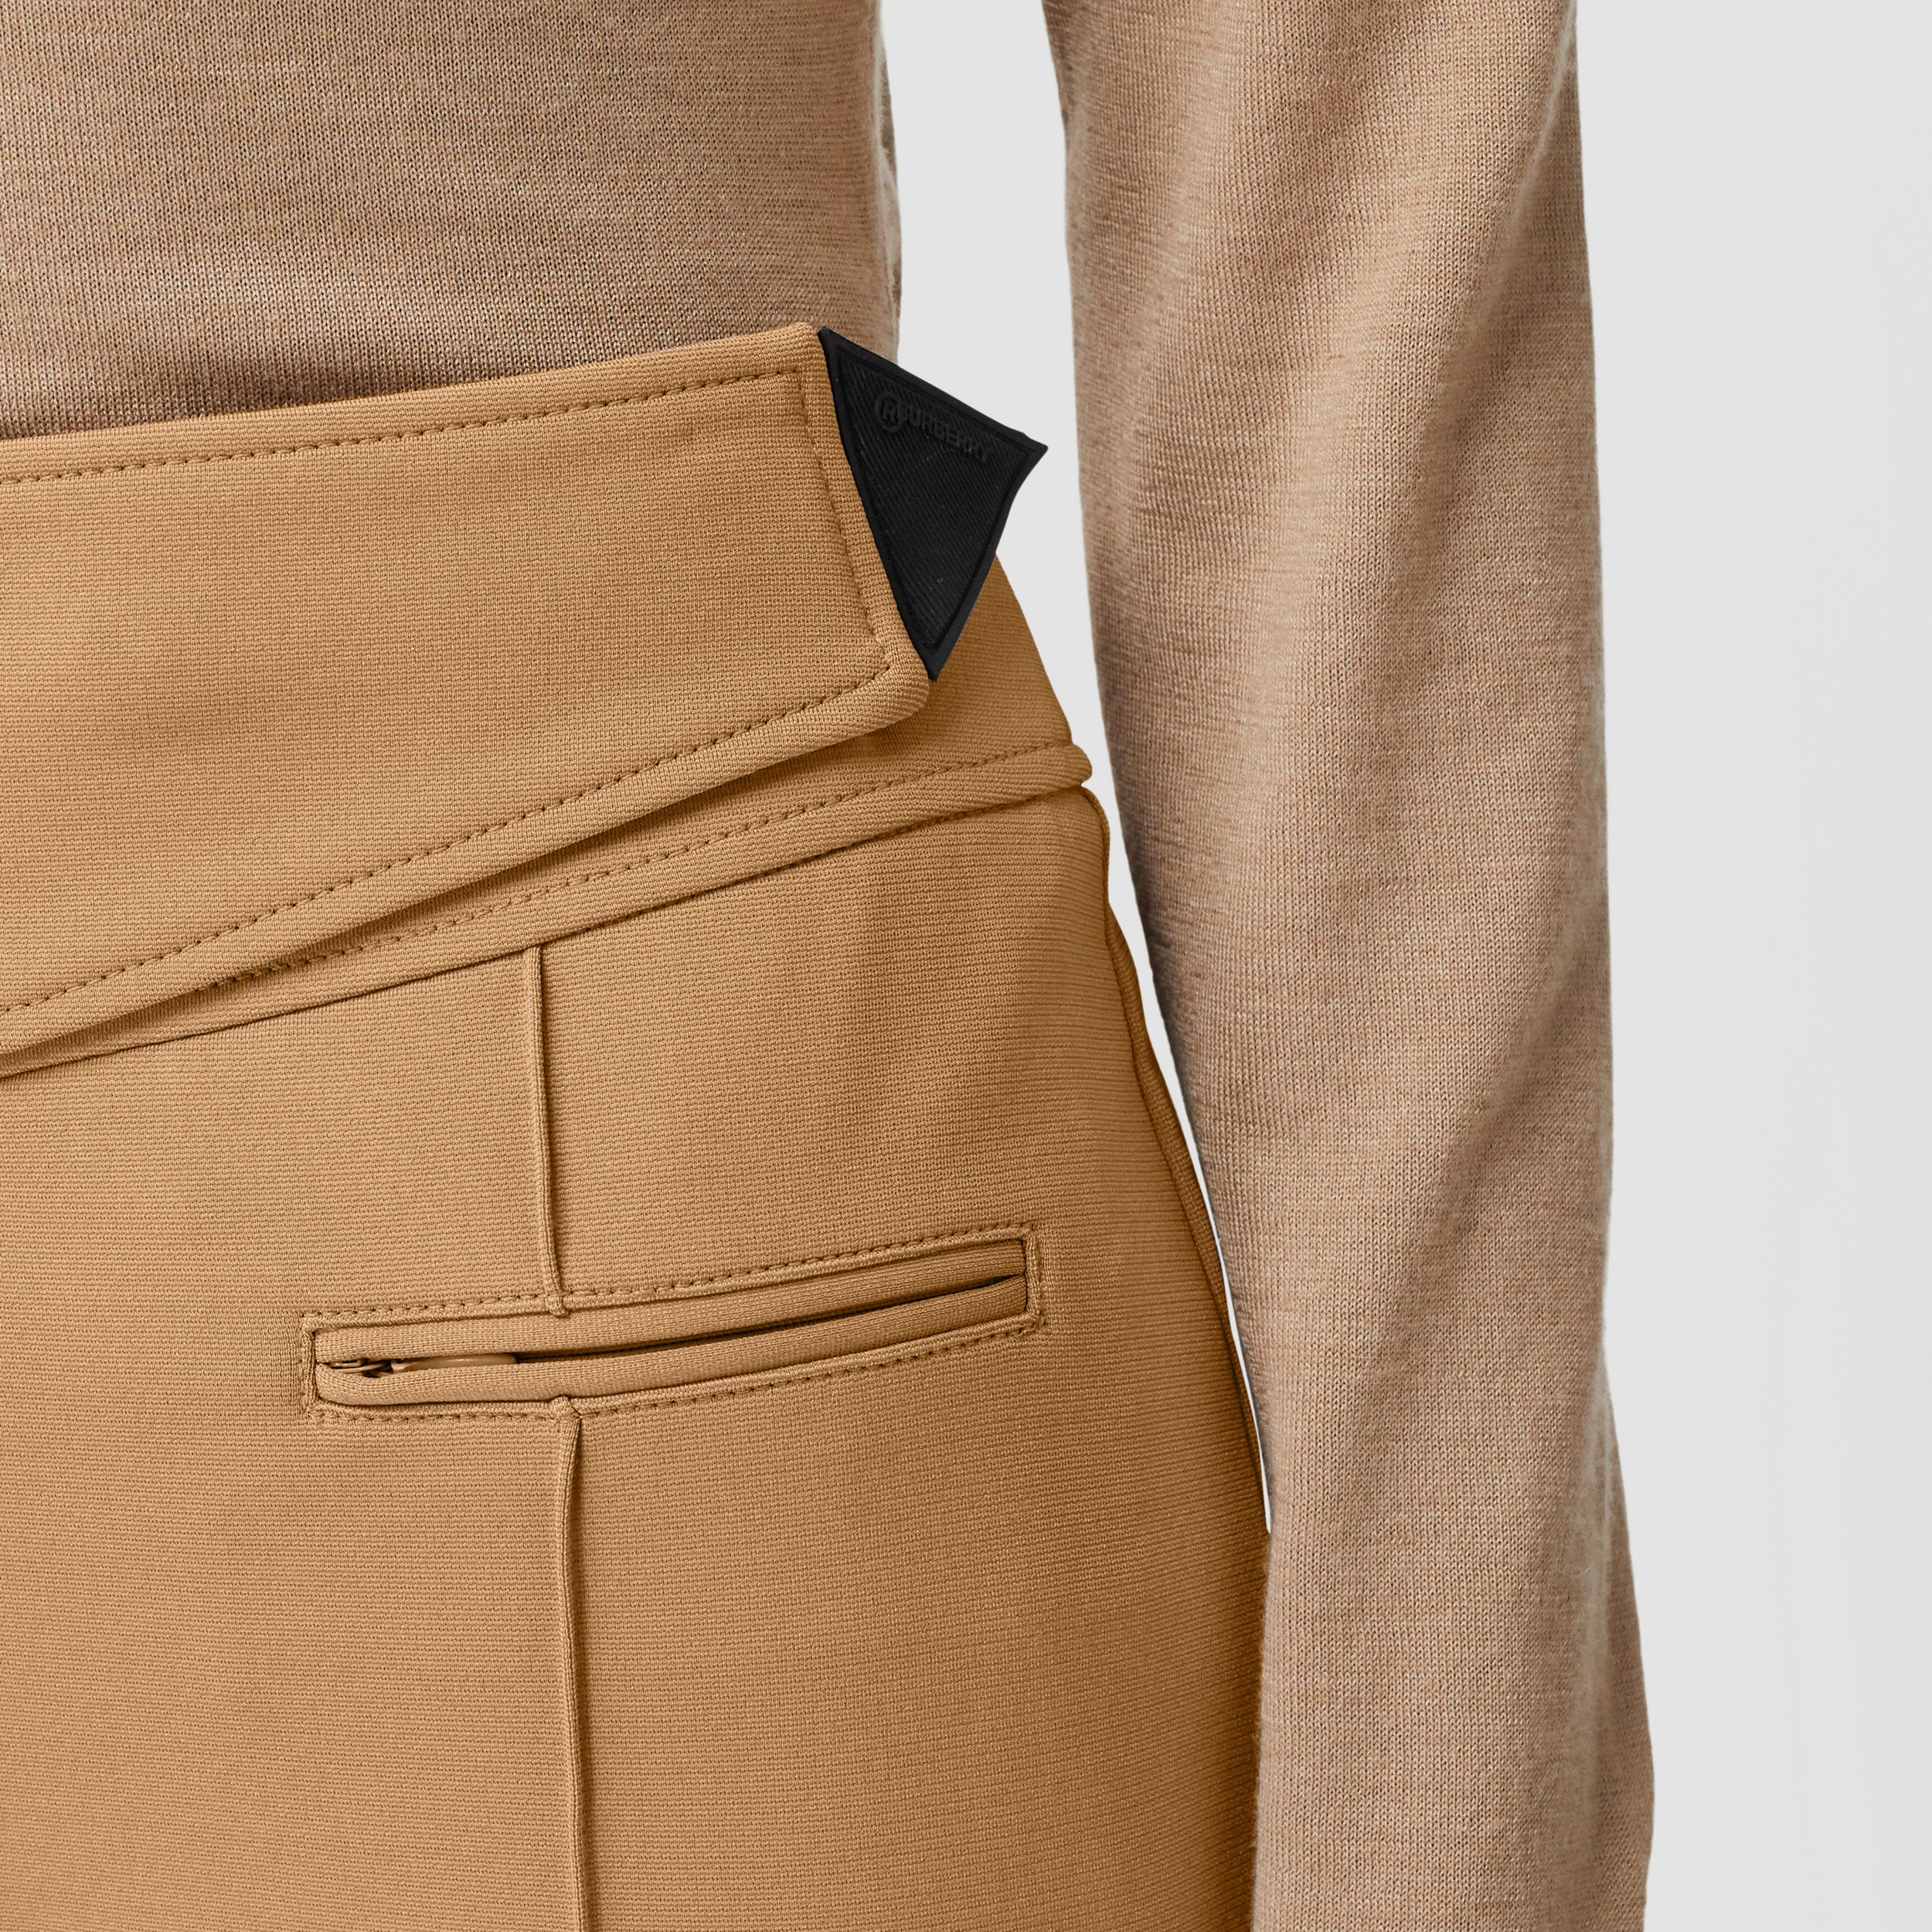 Stretch Crepe Jersey Jodhpurs in Dark Tan - Women | Burberry Canada - 2